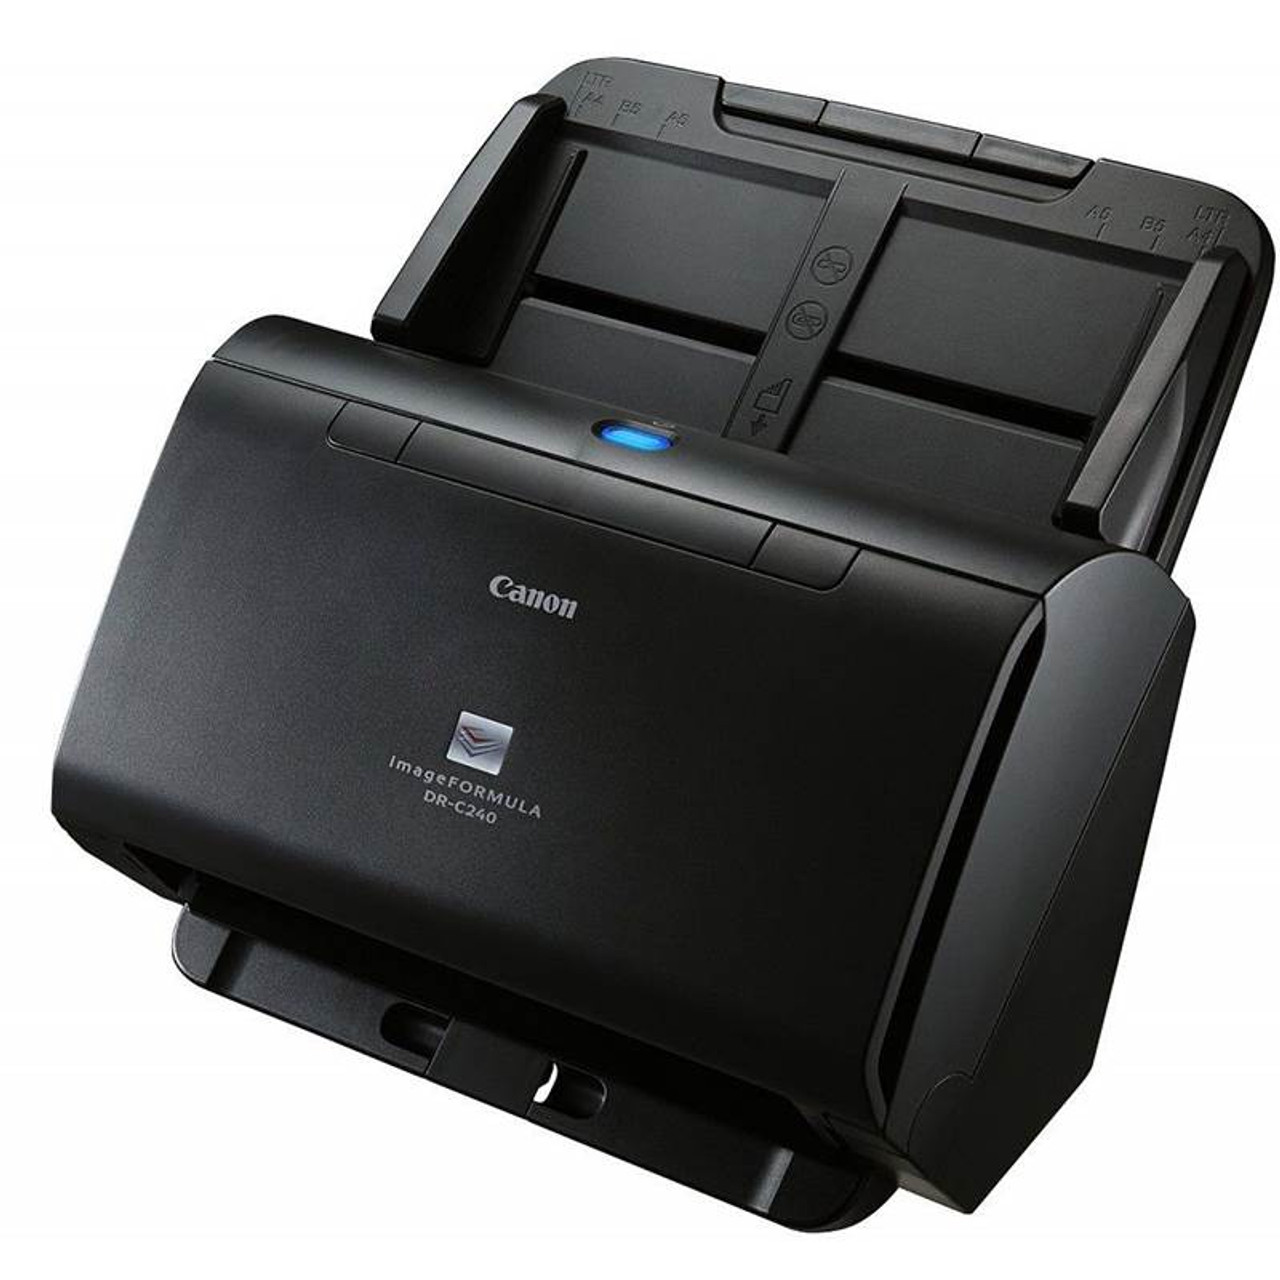 Image for Canon imageFORMULA DR-C240 Compact Document Scanner CX Computer Superstore